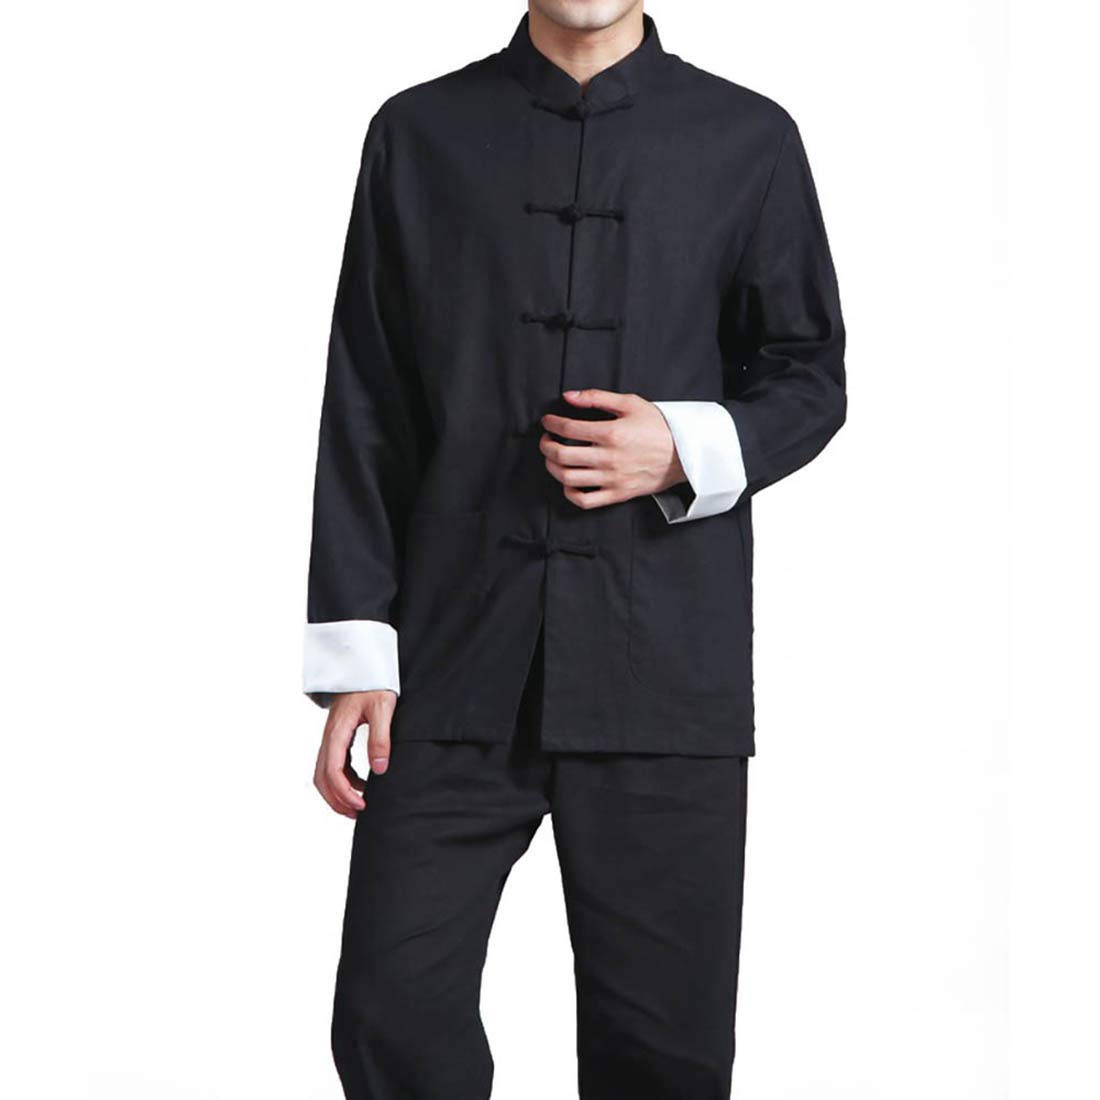 Mens Cotton Linen Kung Fu Suit Chinese Martial Arts Uniform Meditation Suit Roll-Up Sleeve Frog Button Shirt Pants Outfit